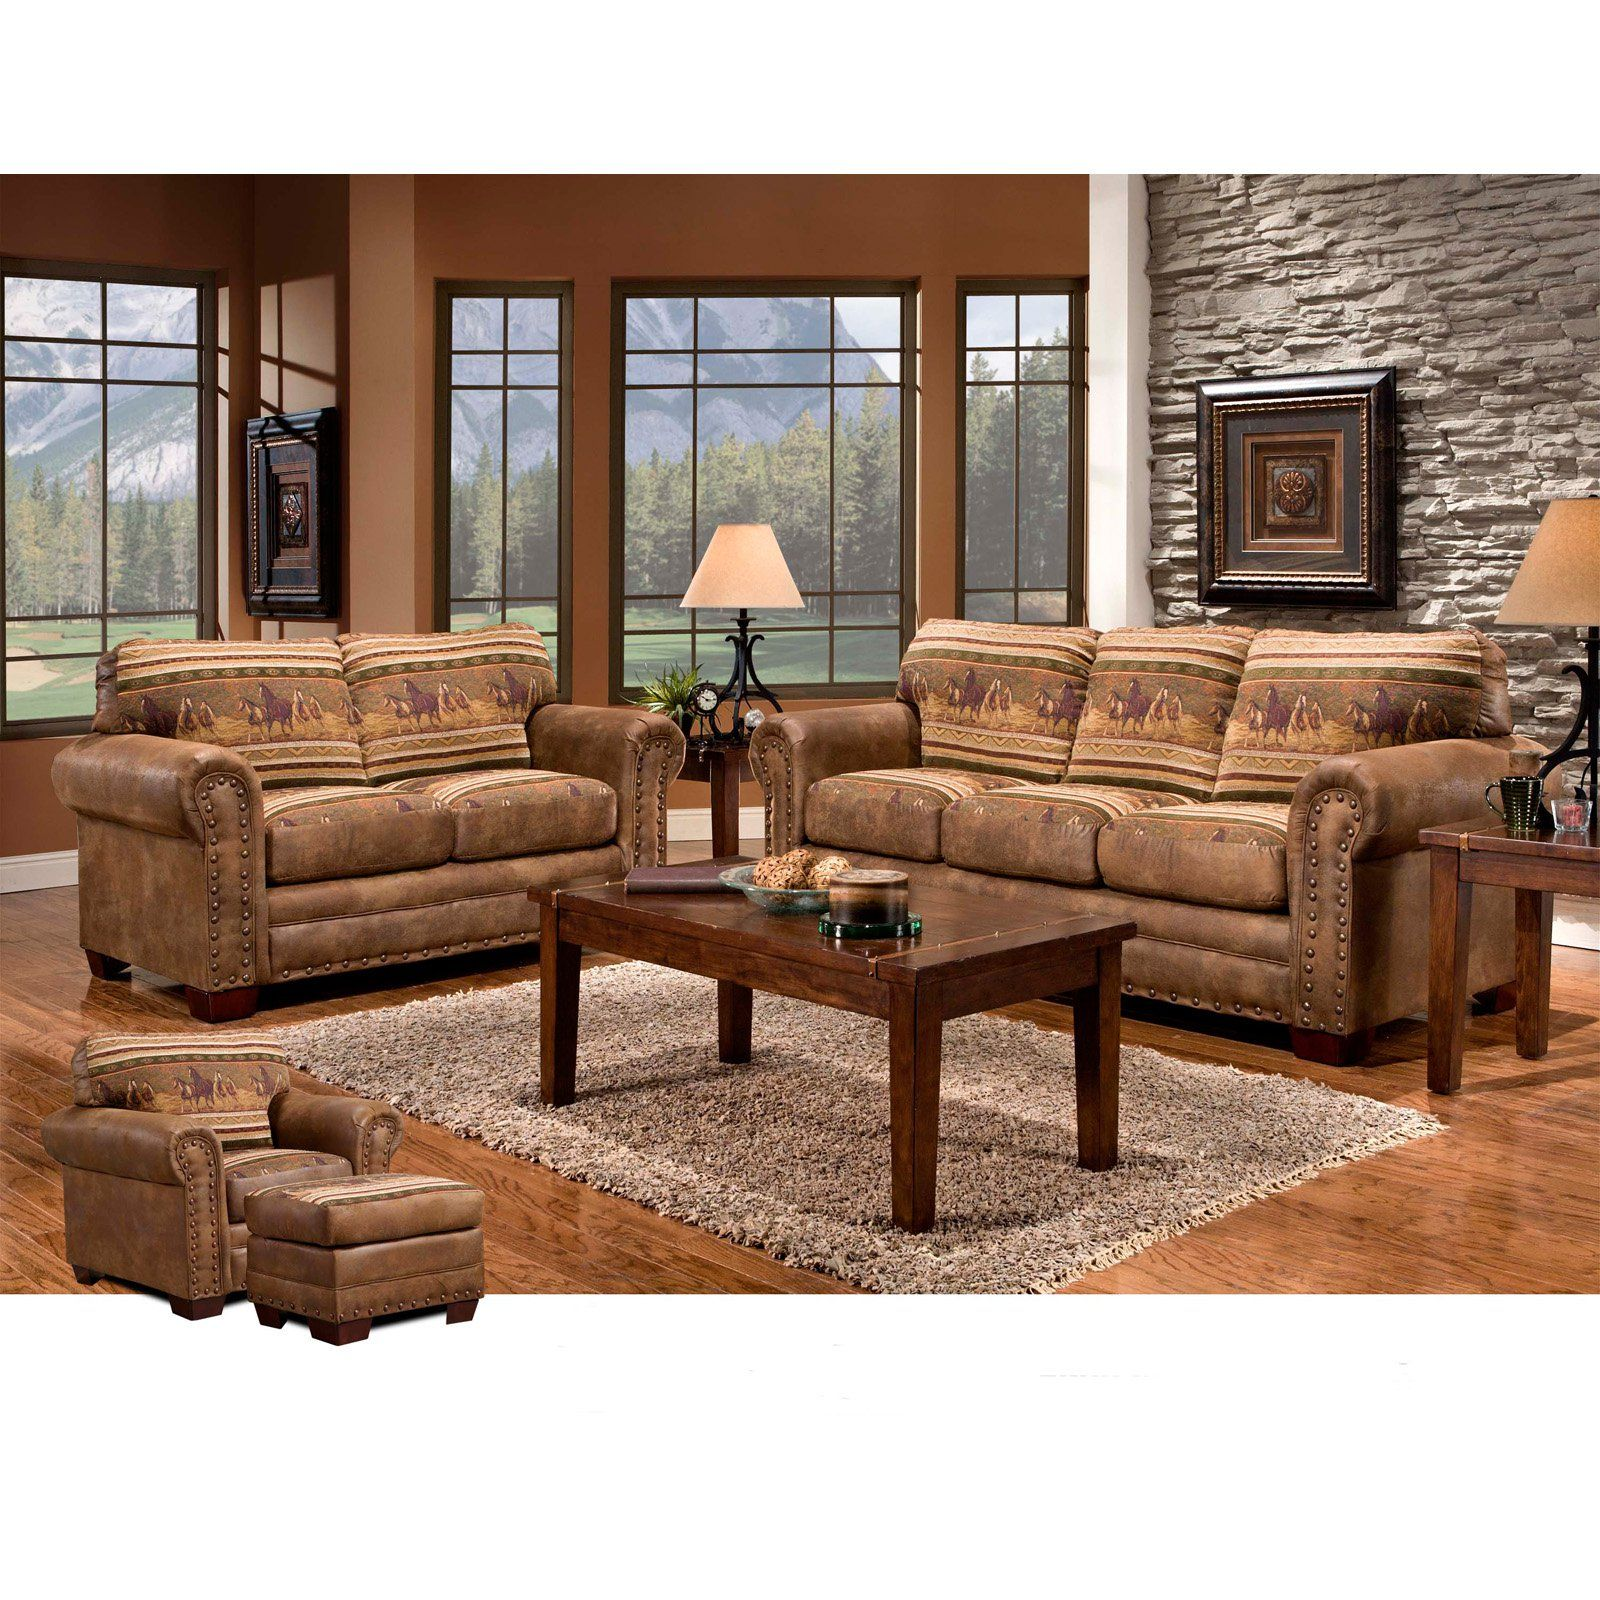 Outdoor Leisure Products Wild Horses 4 Piece Sofa Set 4 Piece Living Room Set Living Room Sets Furniture Living Room Sets